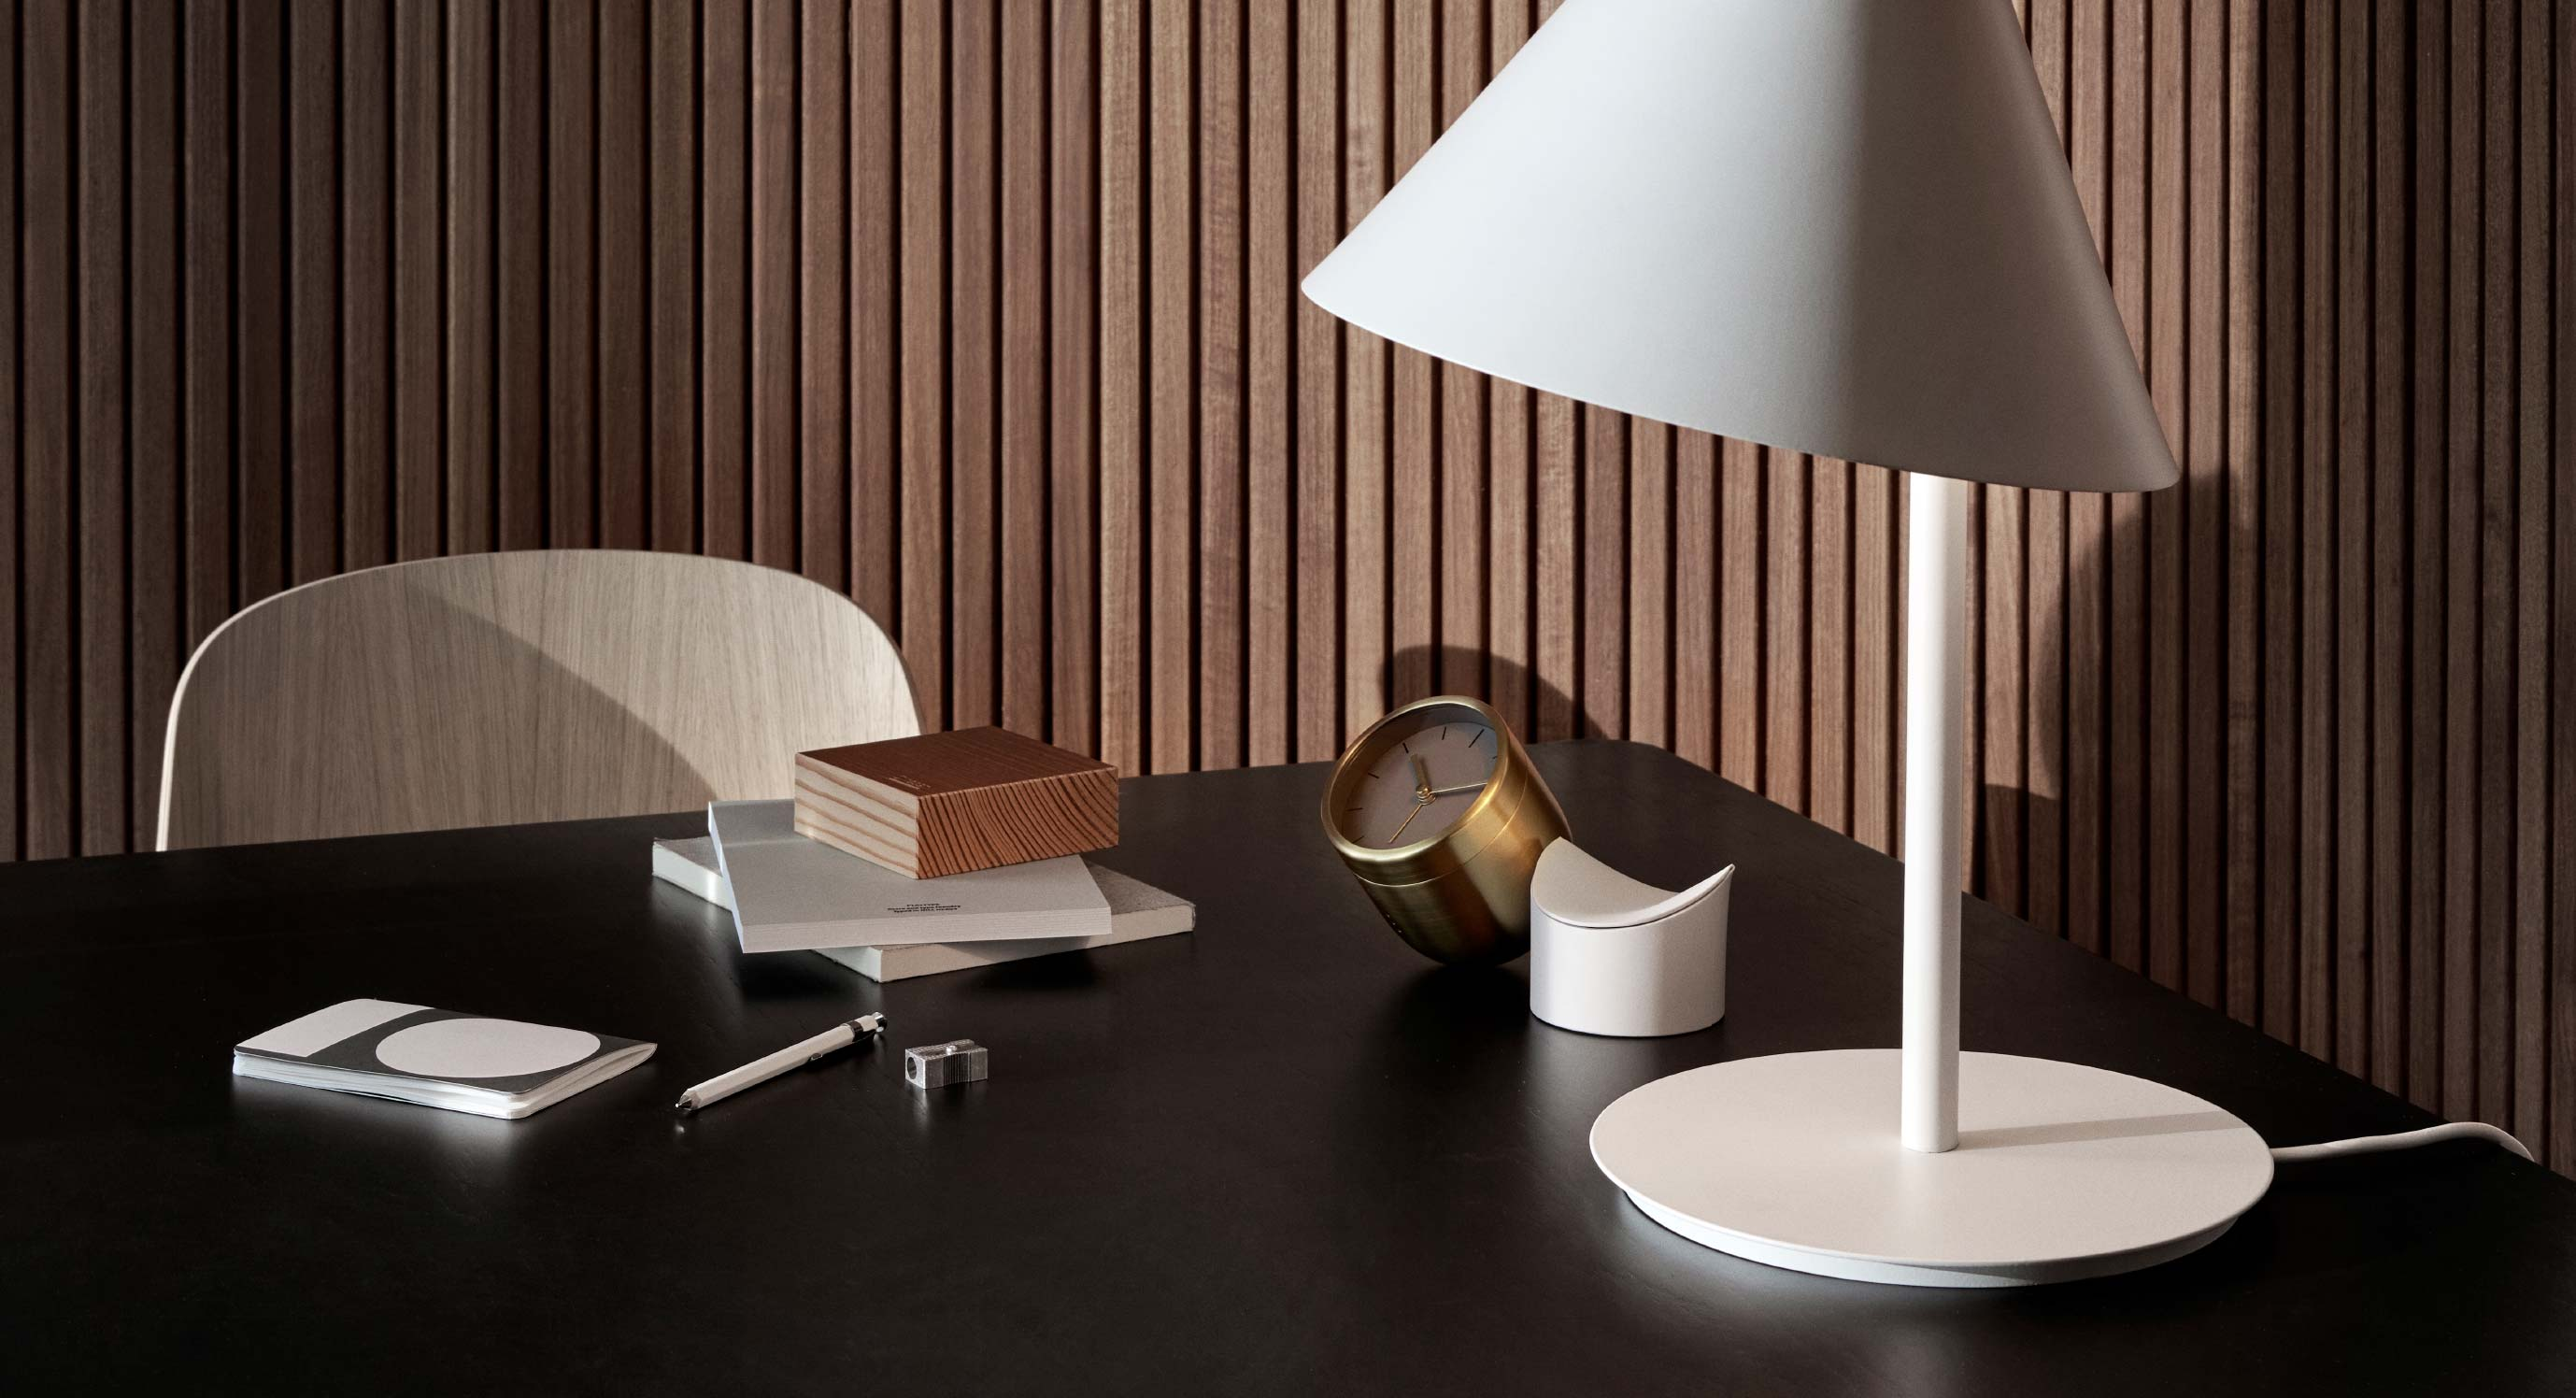 The 5 Desk Lamps Your Office Space Needs